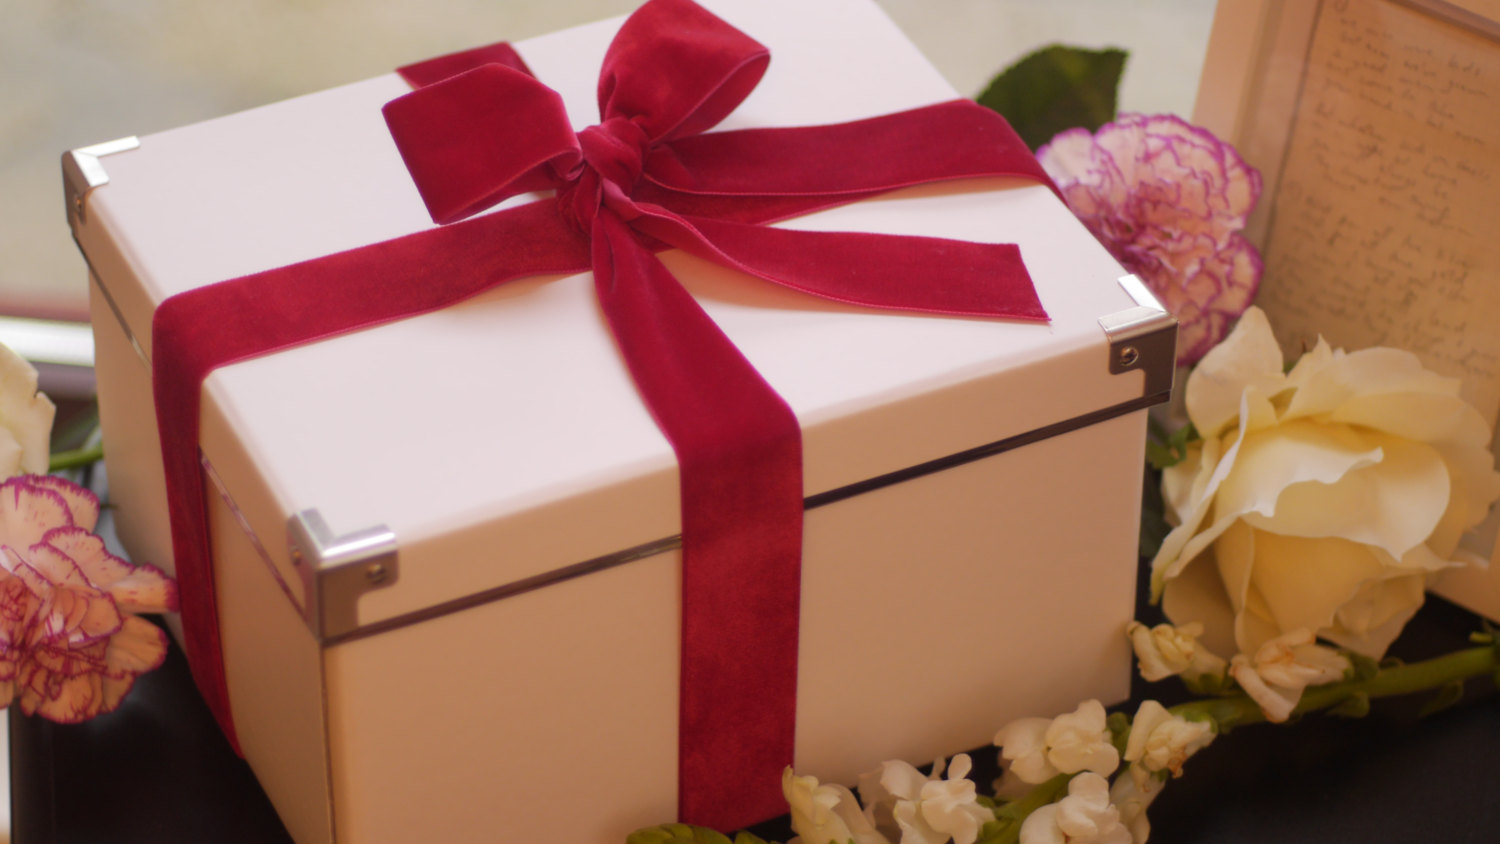 18 Cute Little Gift Box Ideas for Valentine's Day - Style Motivation